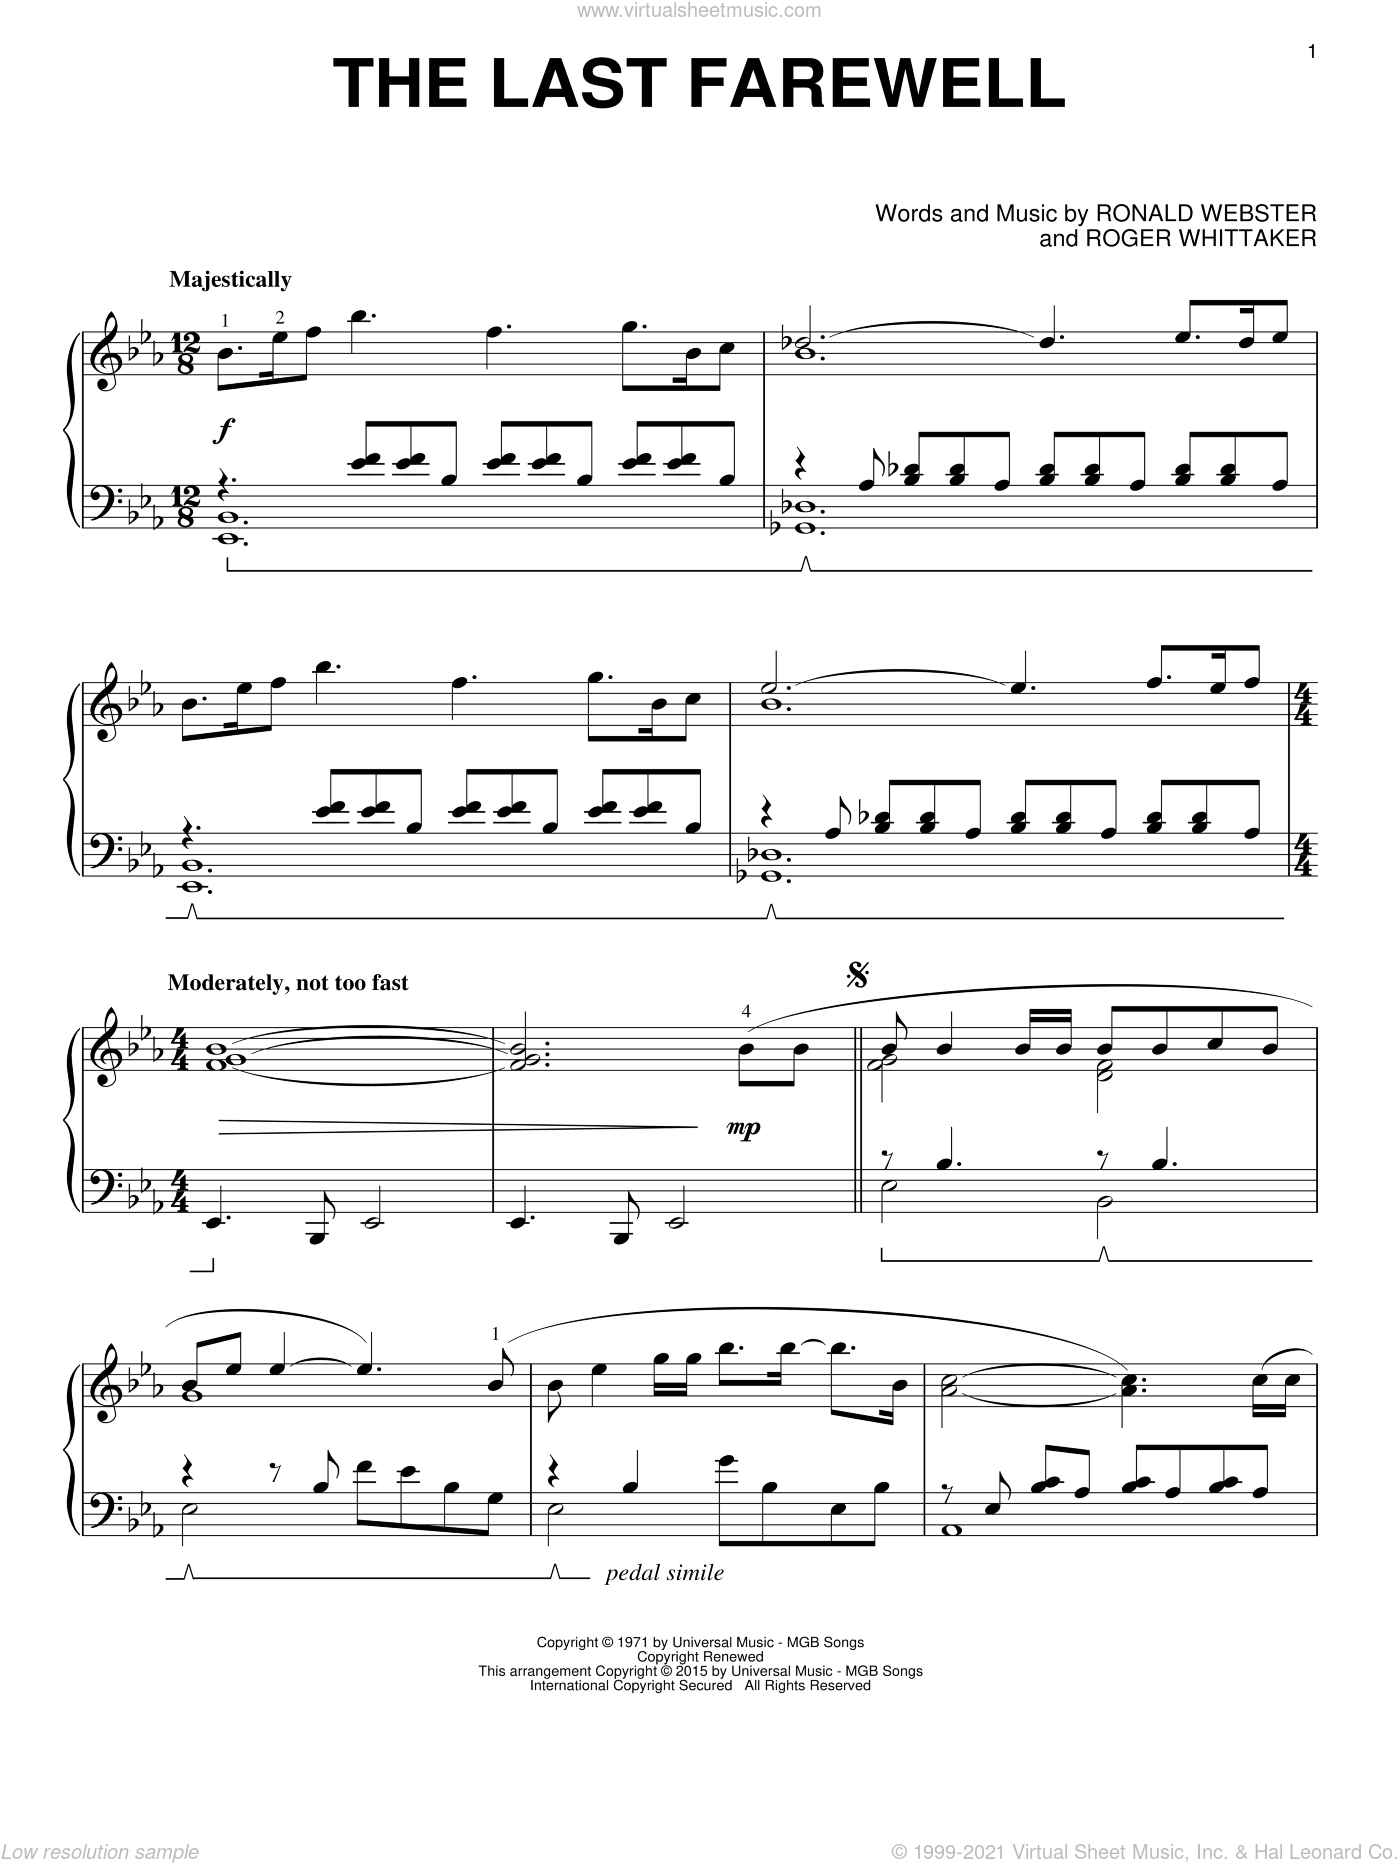 The Last Farewell sheet music for piano solo by Roger Whittaker and Ronald Webster, classical score, intermediate skill level